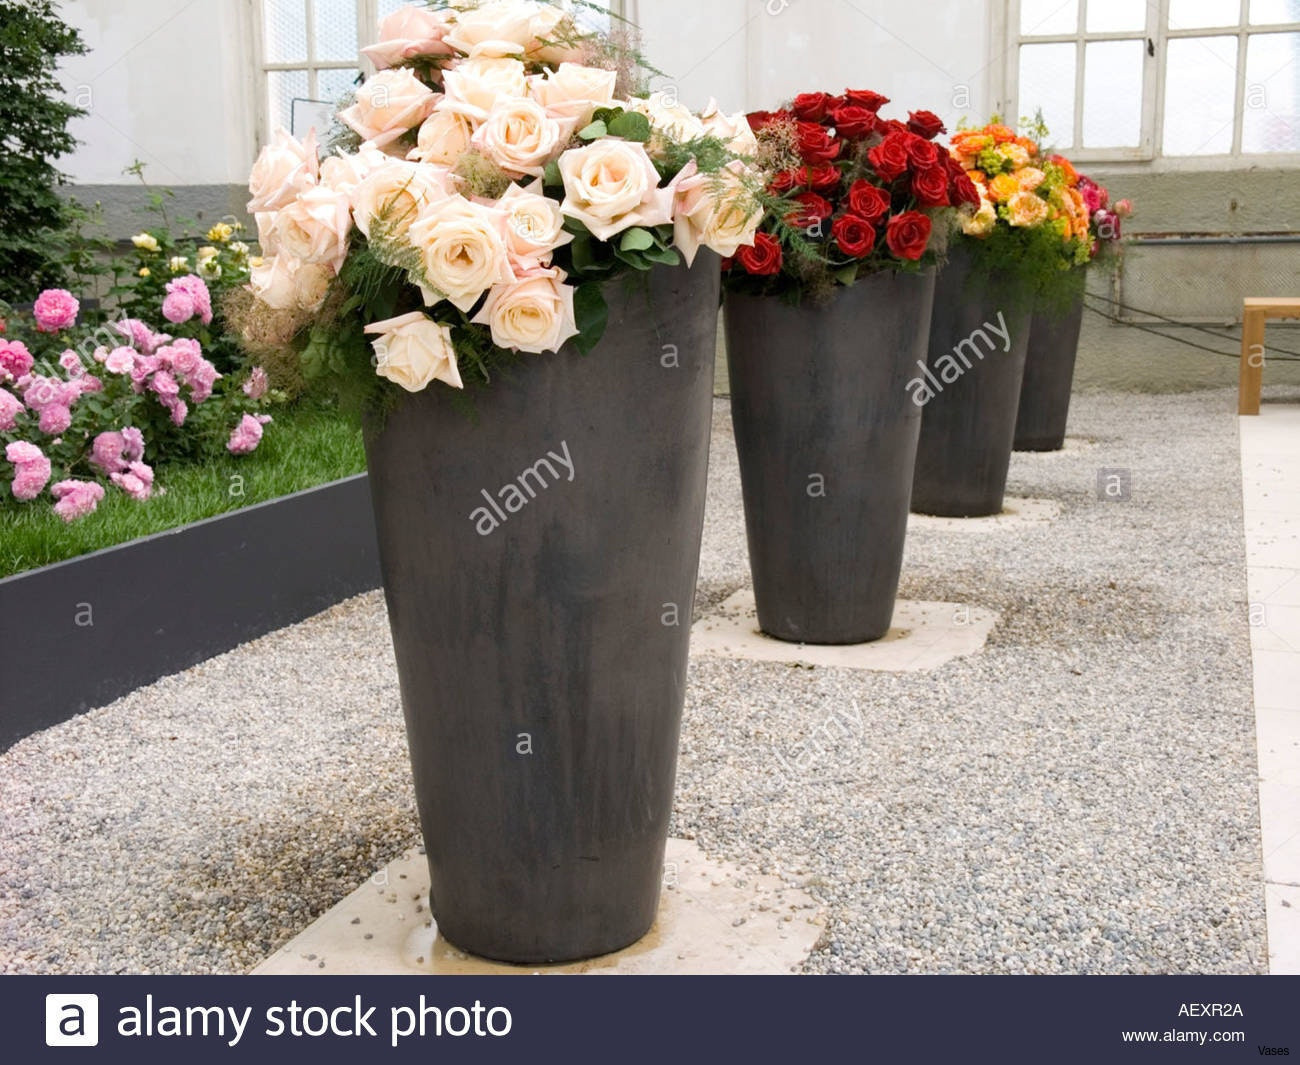 buy floor vases online of big glass vase pics vases big with flowers floor vase flowersi 0d with big glass vase stock buy used wedding decor awesome articles with flower vases for sale of